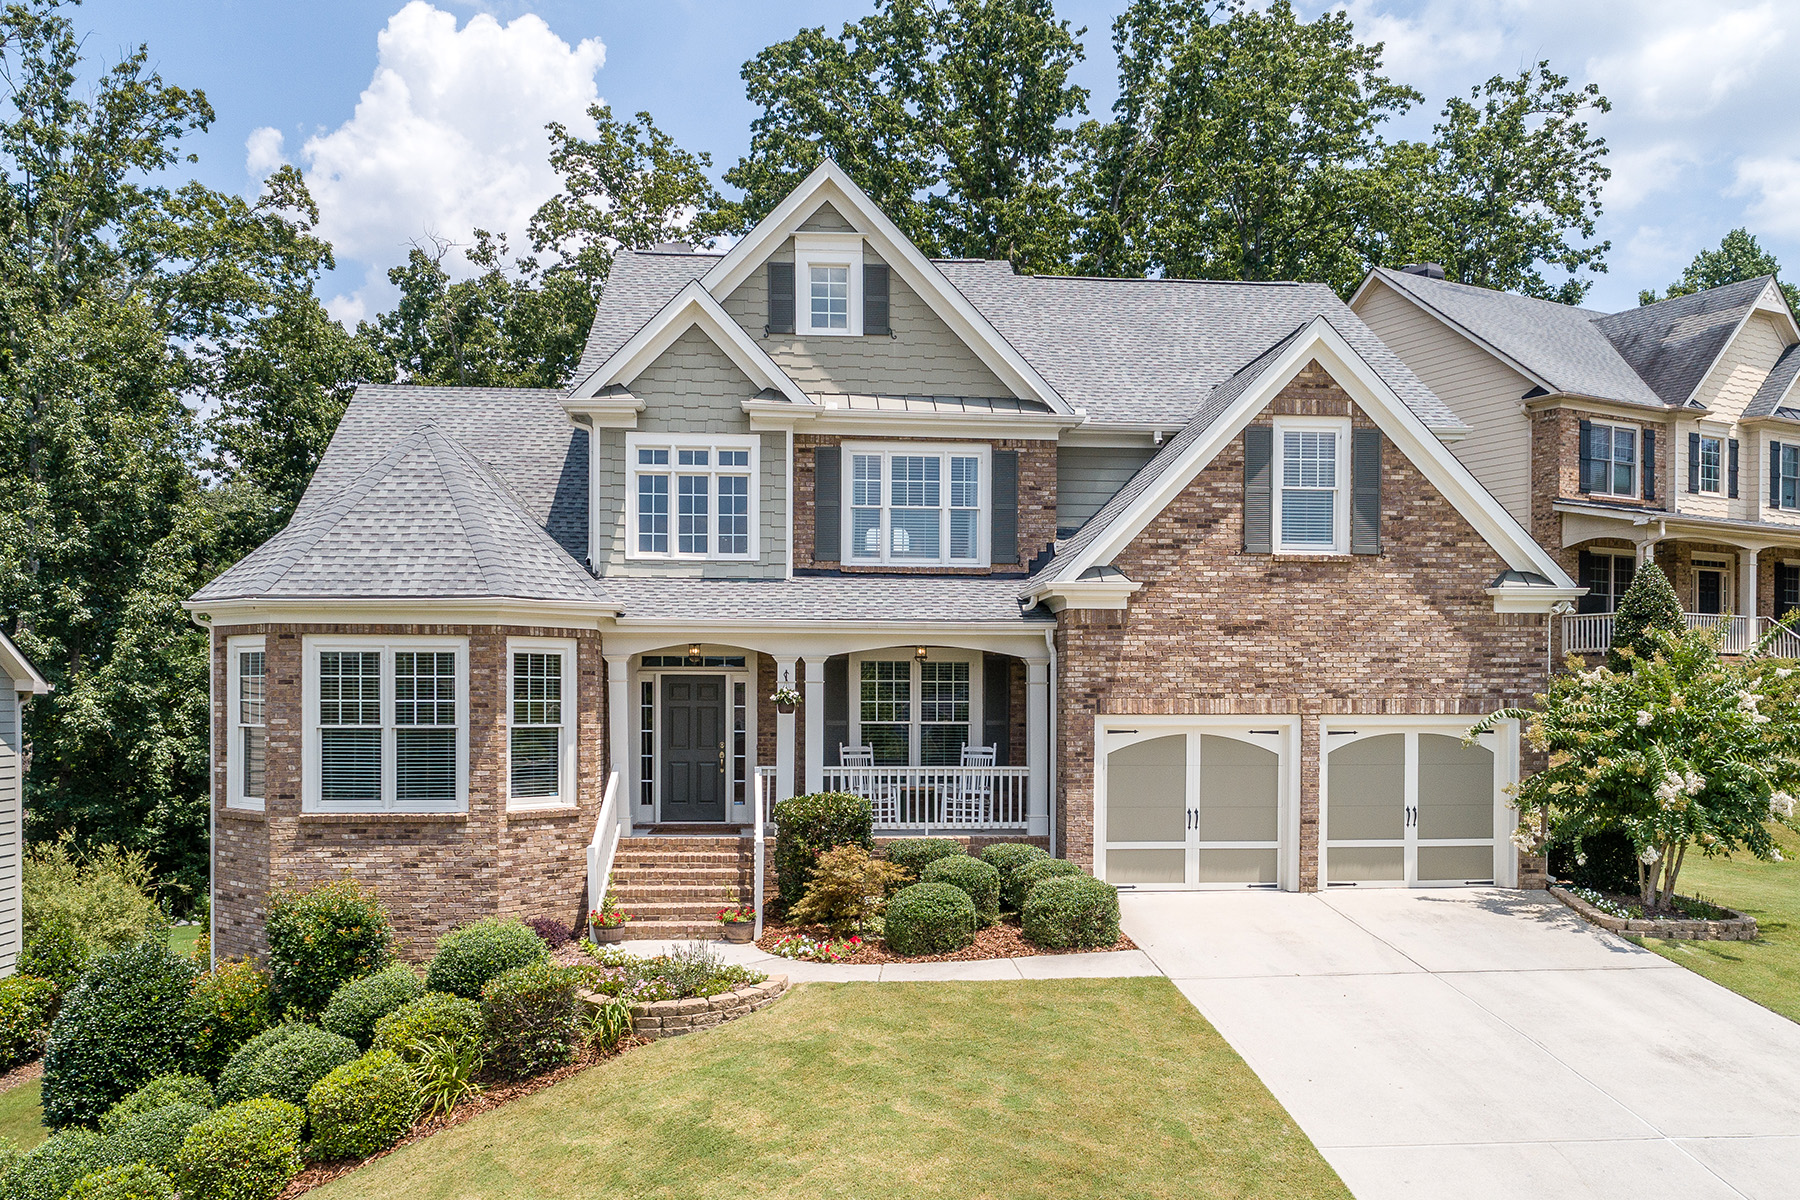 Single Family Home for Sale at Sterling On The Lake 7444 Shady Glen Drive Flowery Branch, Georgia 30542 United States